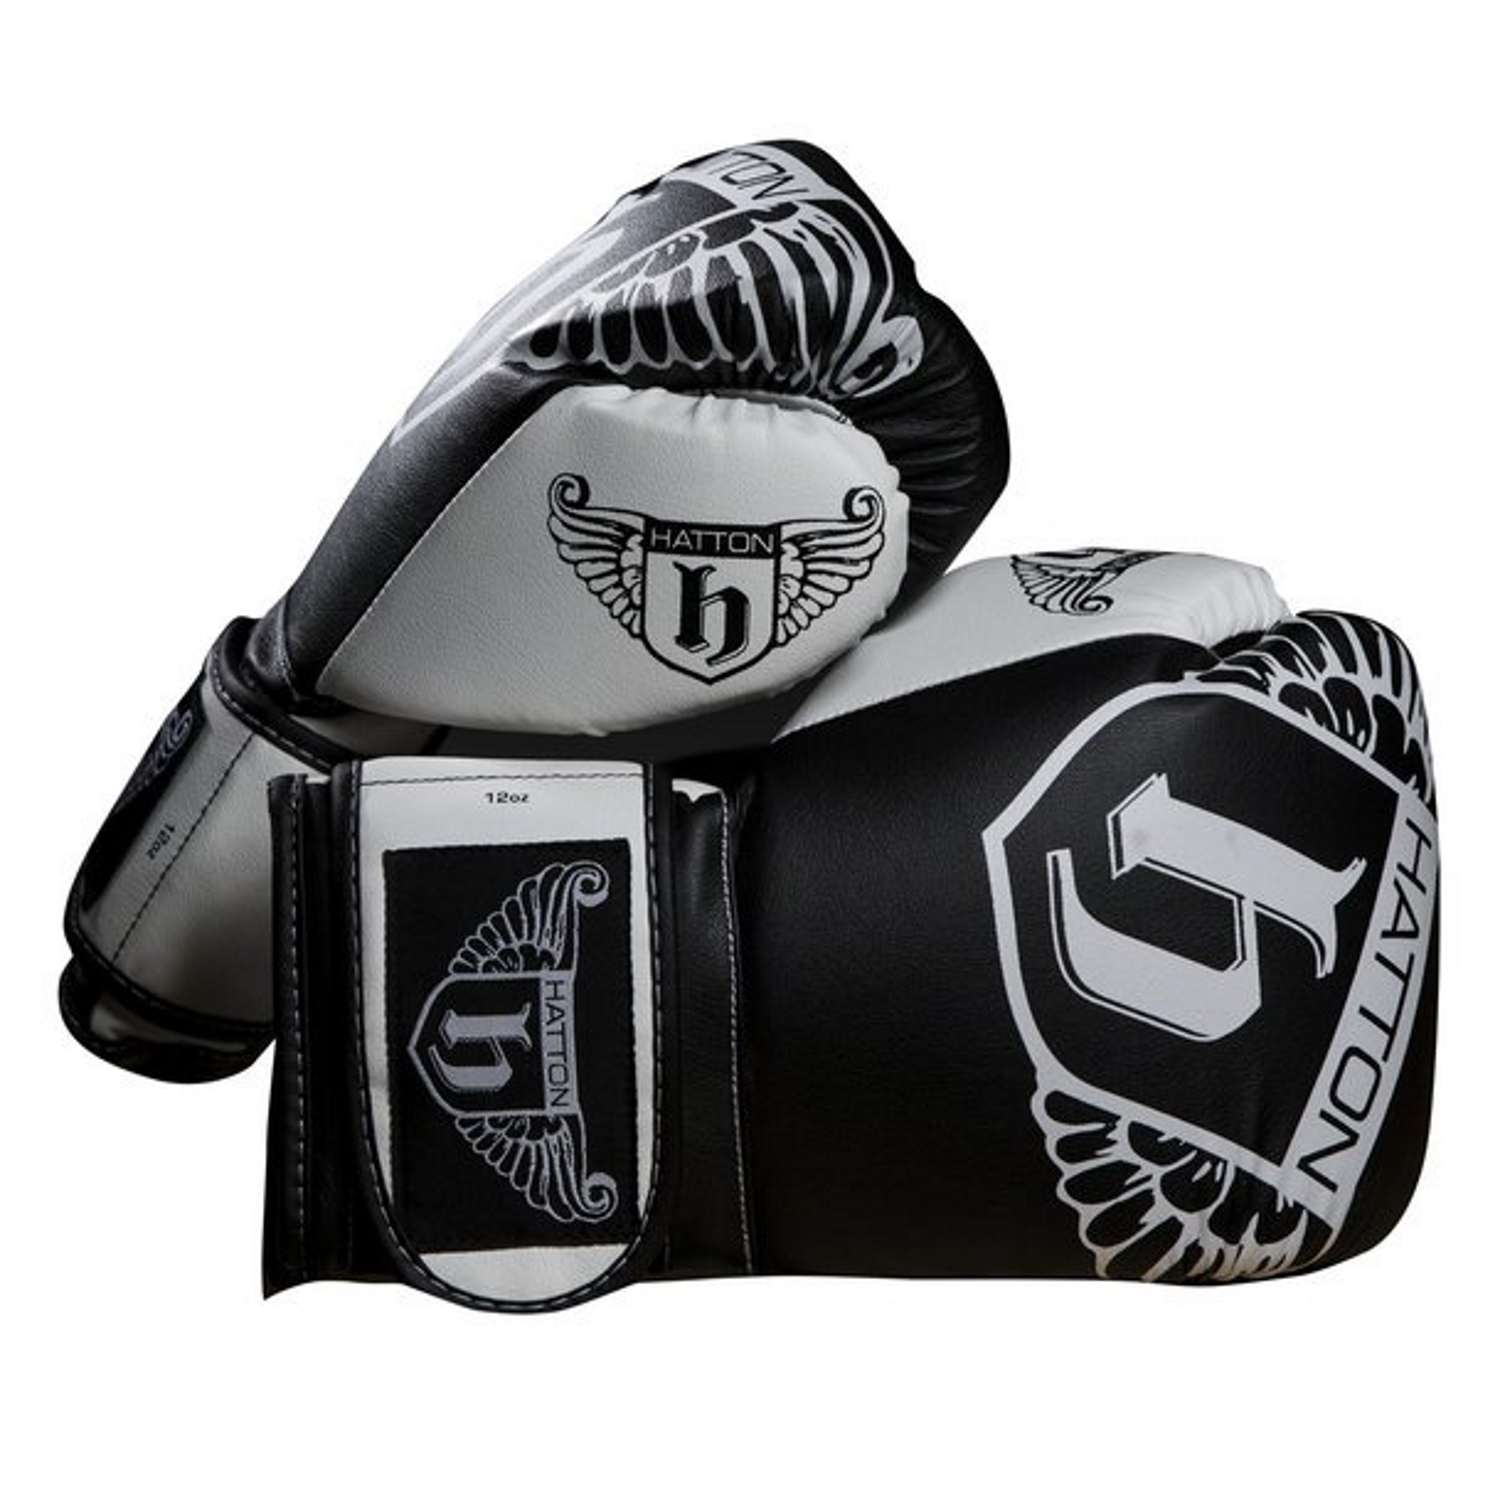 Hatton PU Boxing Gloves (Pair)